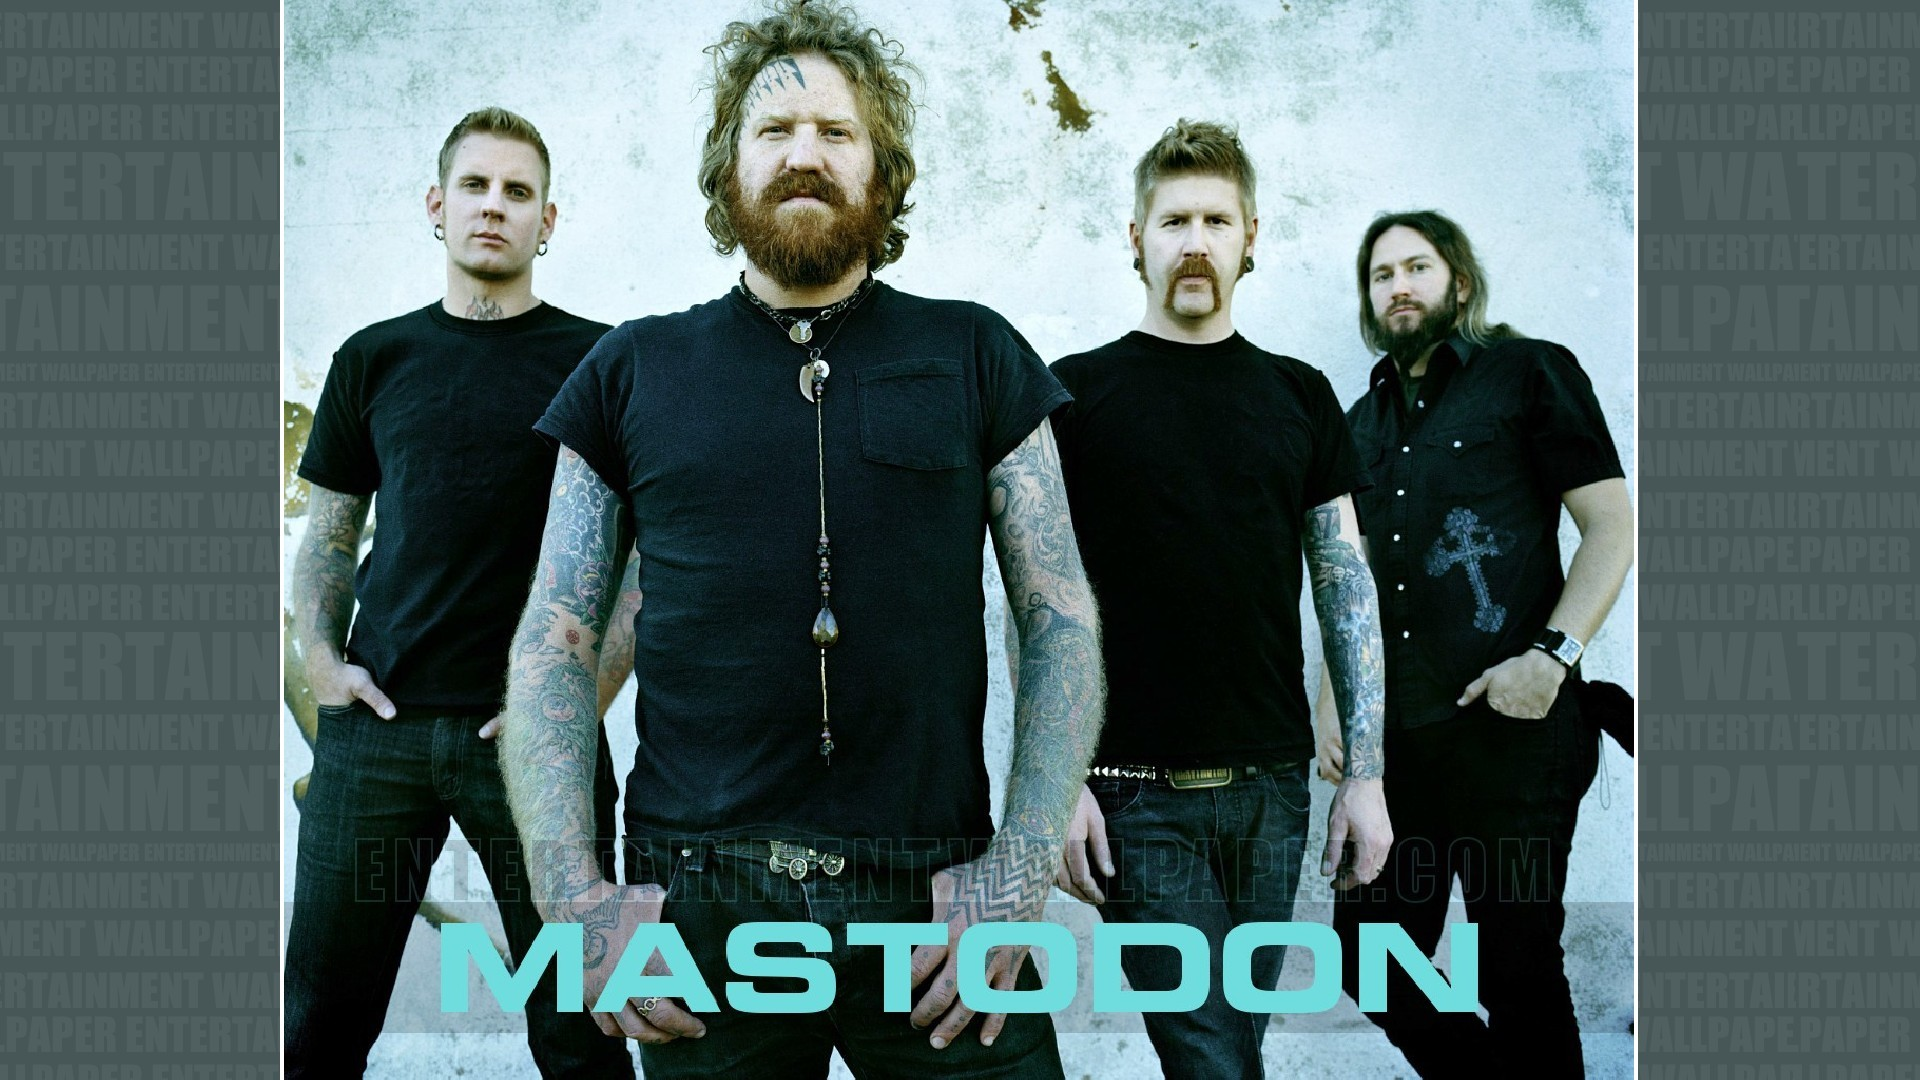 1920x1080 Mastodon Wallpaper - Original size, download now.